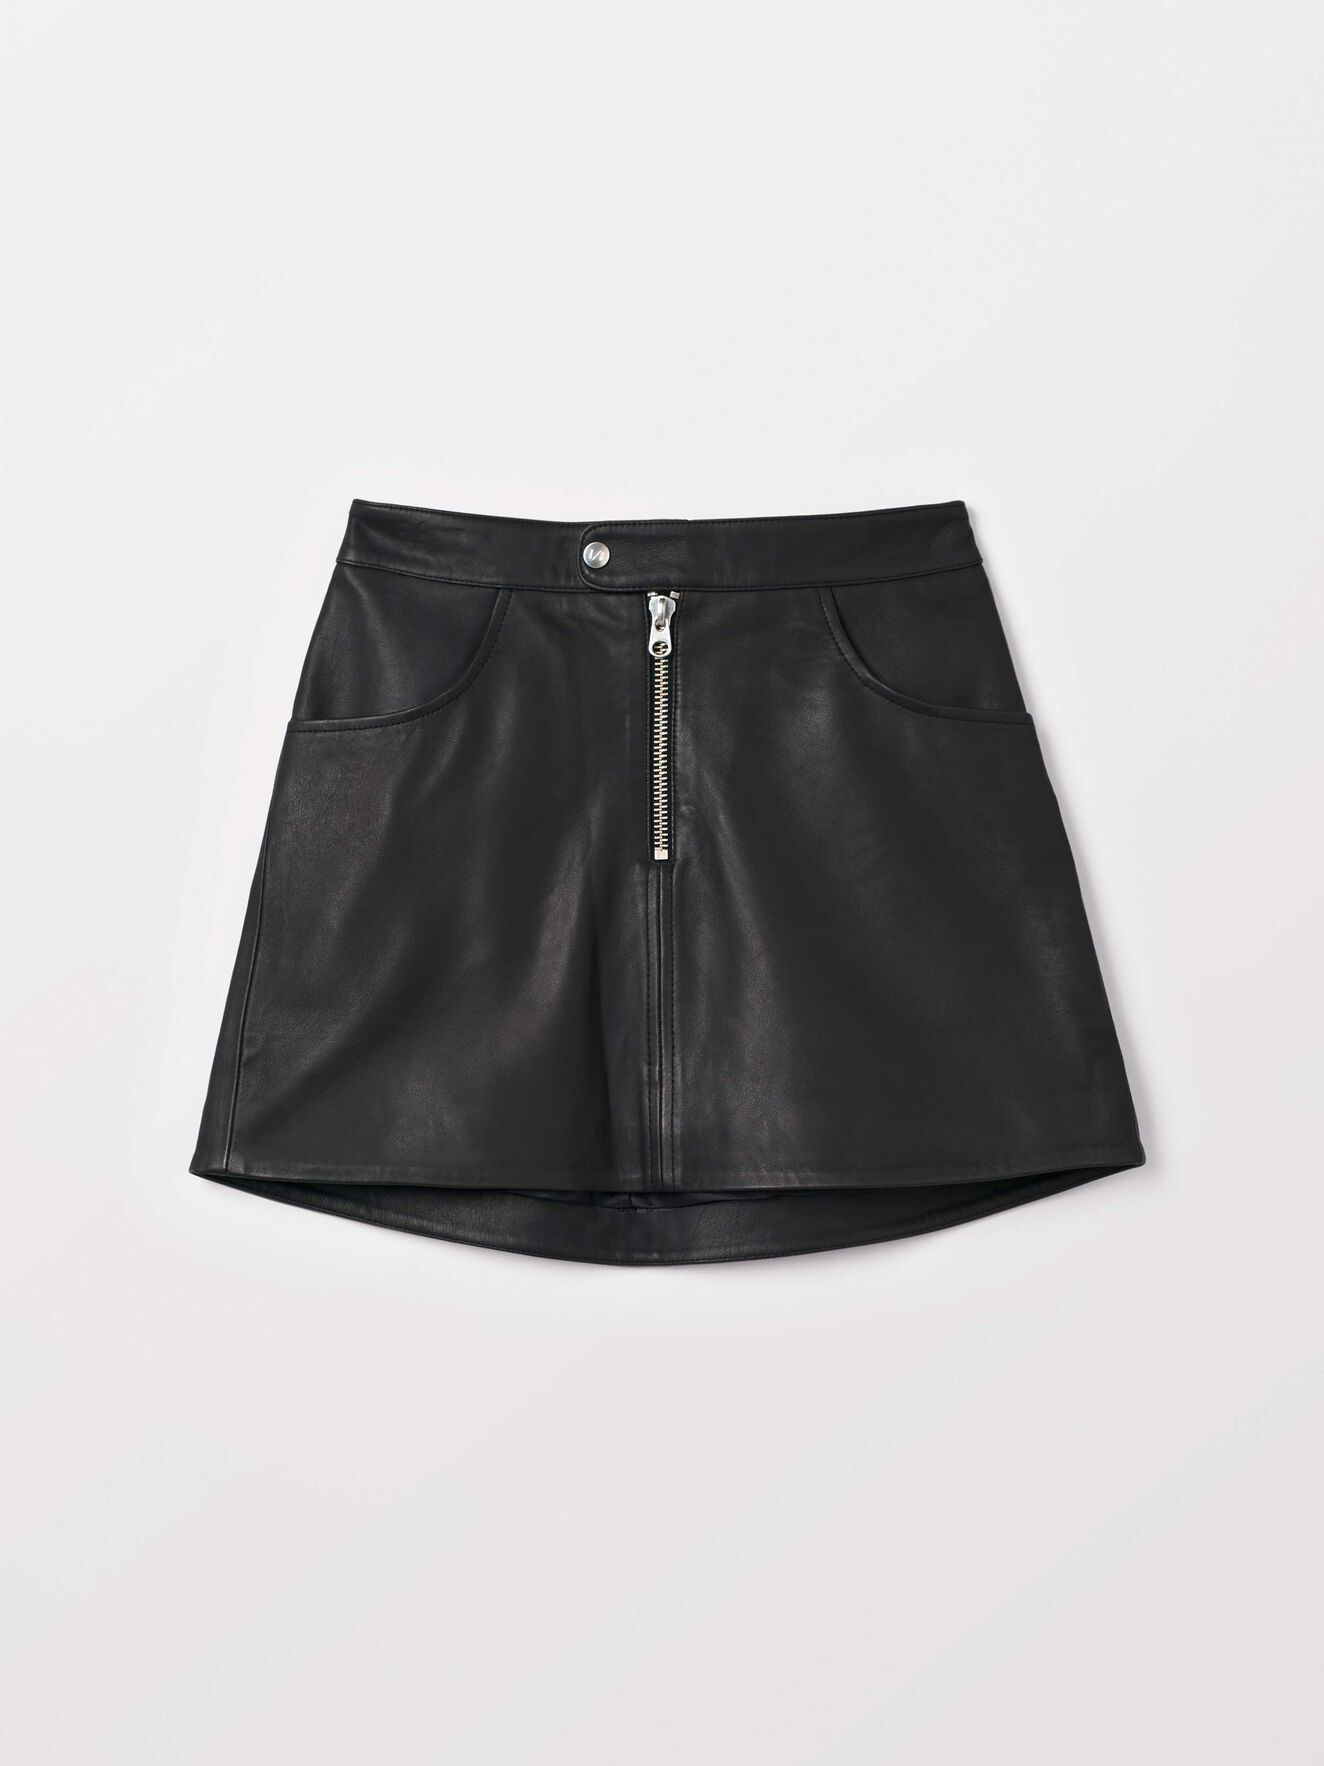 Marlin Le Skirt in Black from Tiger of Sweden